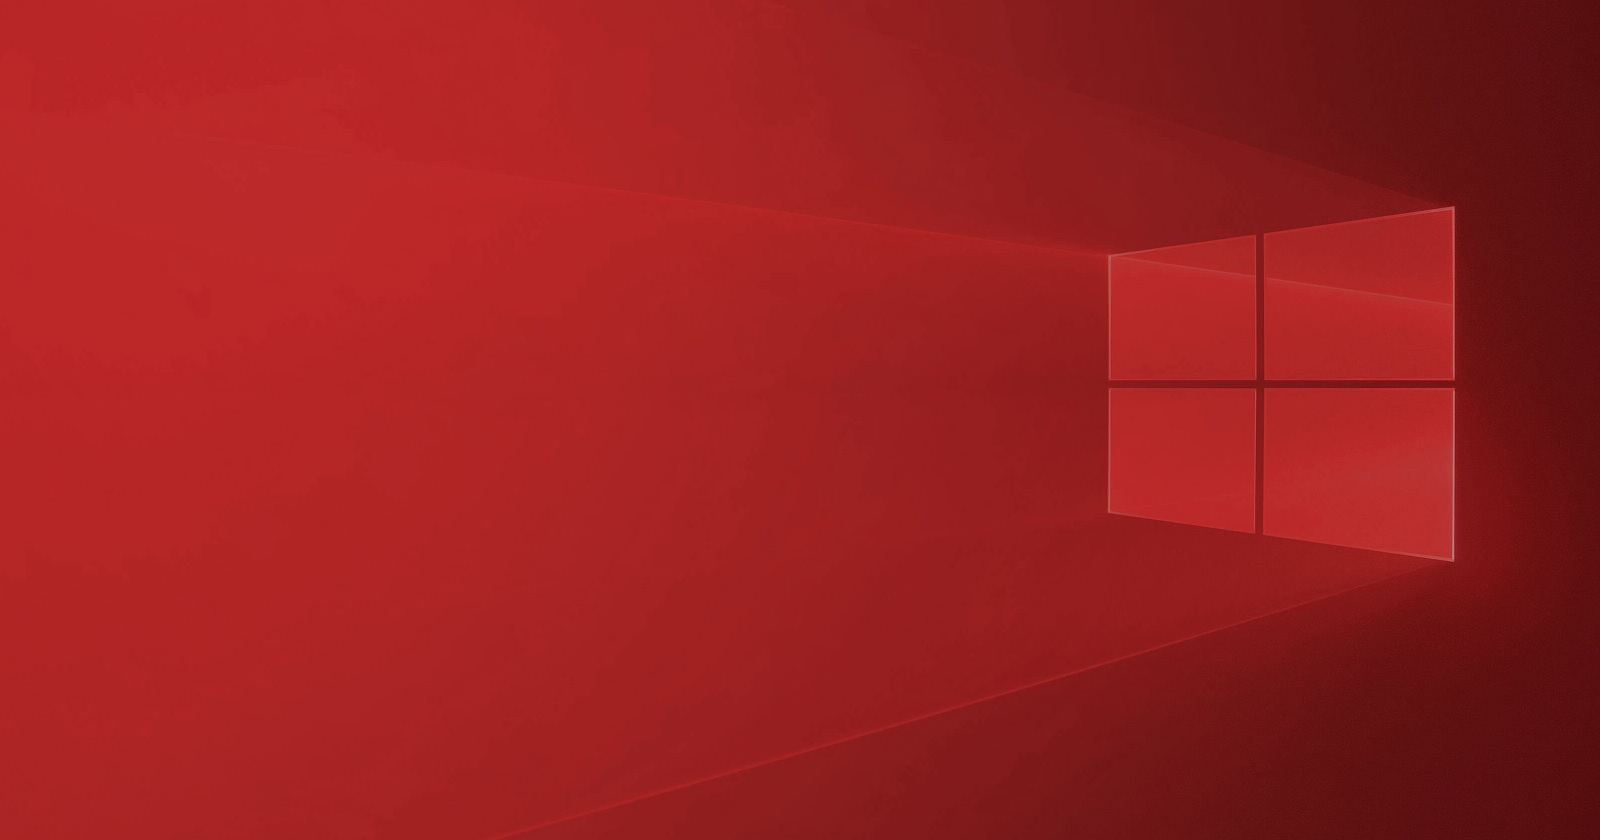 Microsoft confirms Windows 10 Flash Player-killer update is rolling out - WindowsLatest